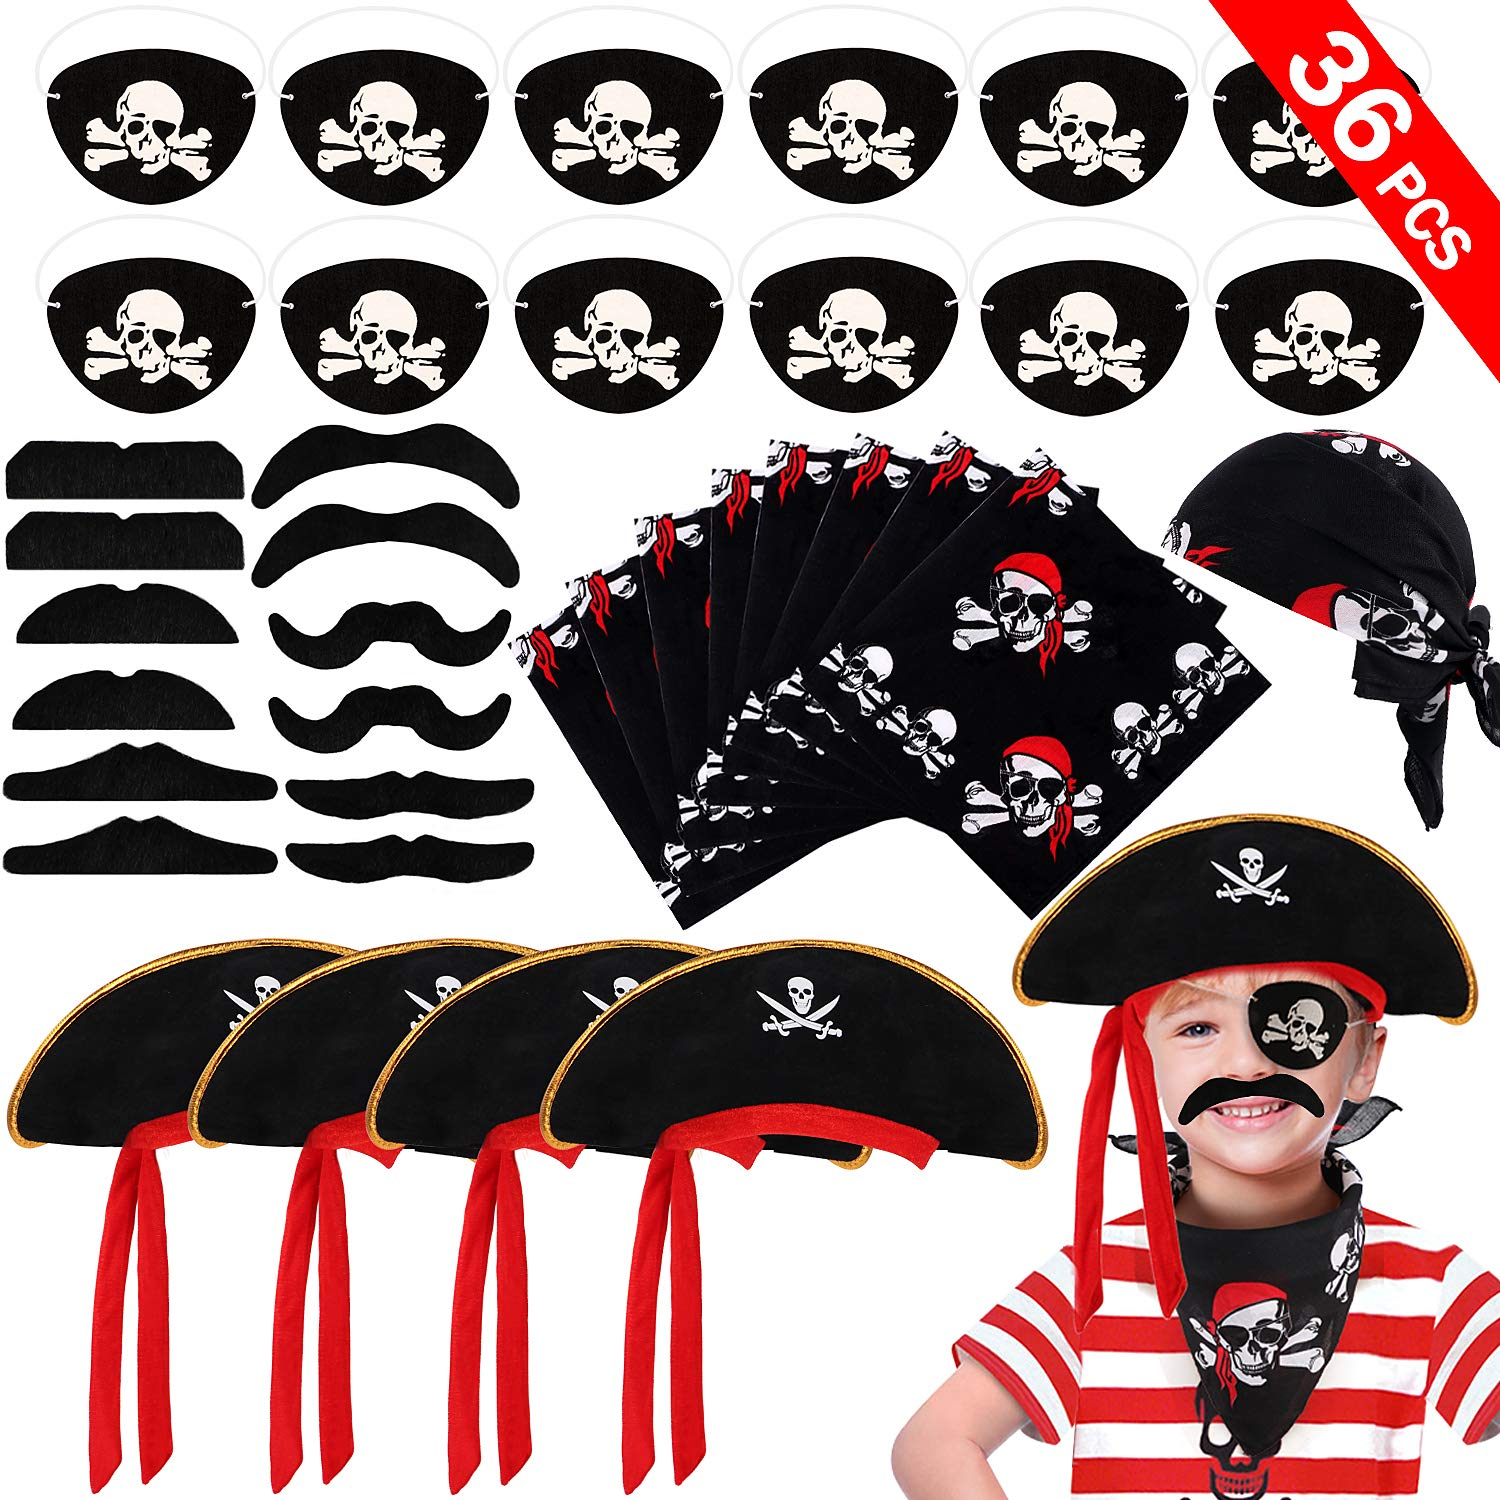 VAMEI 36PCS Pirate Party Supplies for Kids Boys - Pirate Cap, Skull Print Pirate Bandana, Eye Patch, Fake Mustache Cosplay Set Pirate Party Favors for Halloween Masquerade Pirate Party Decorations Accessories by vamei